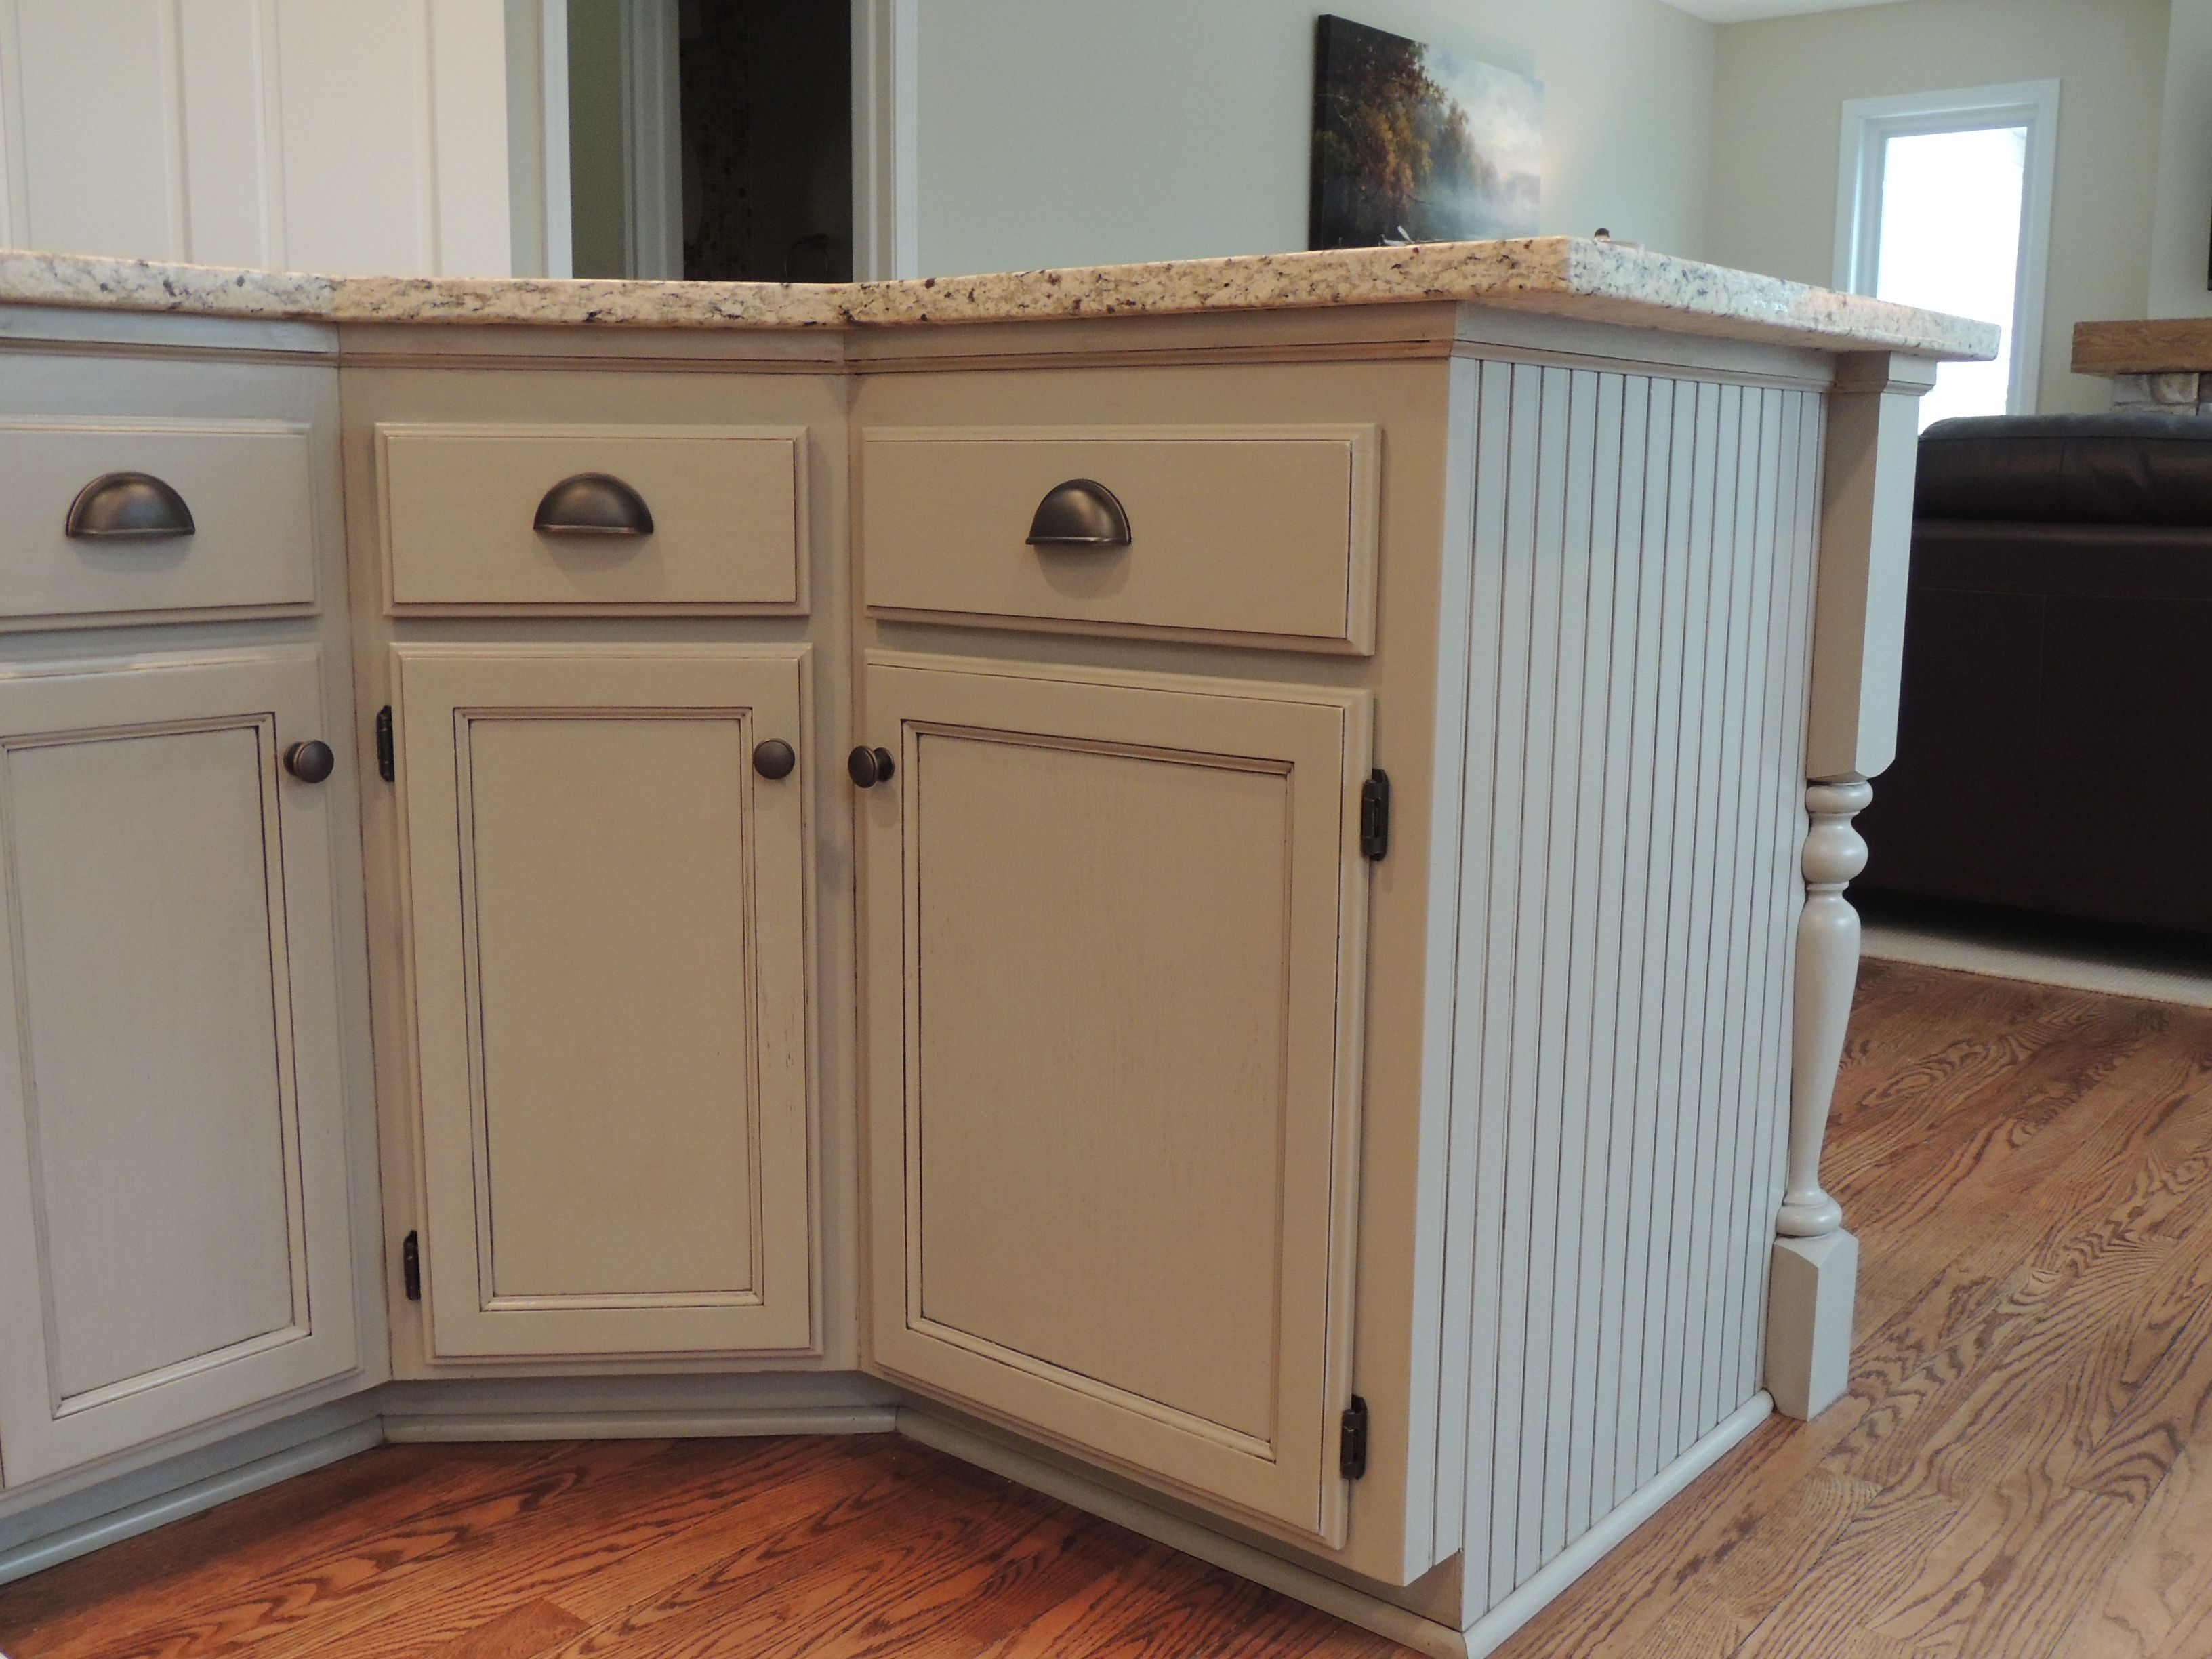 Kitchen Island Cabinets Both Sides Kitchen Cabinet Refinishing Repainted Kitchen Island